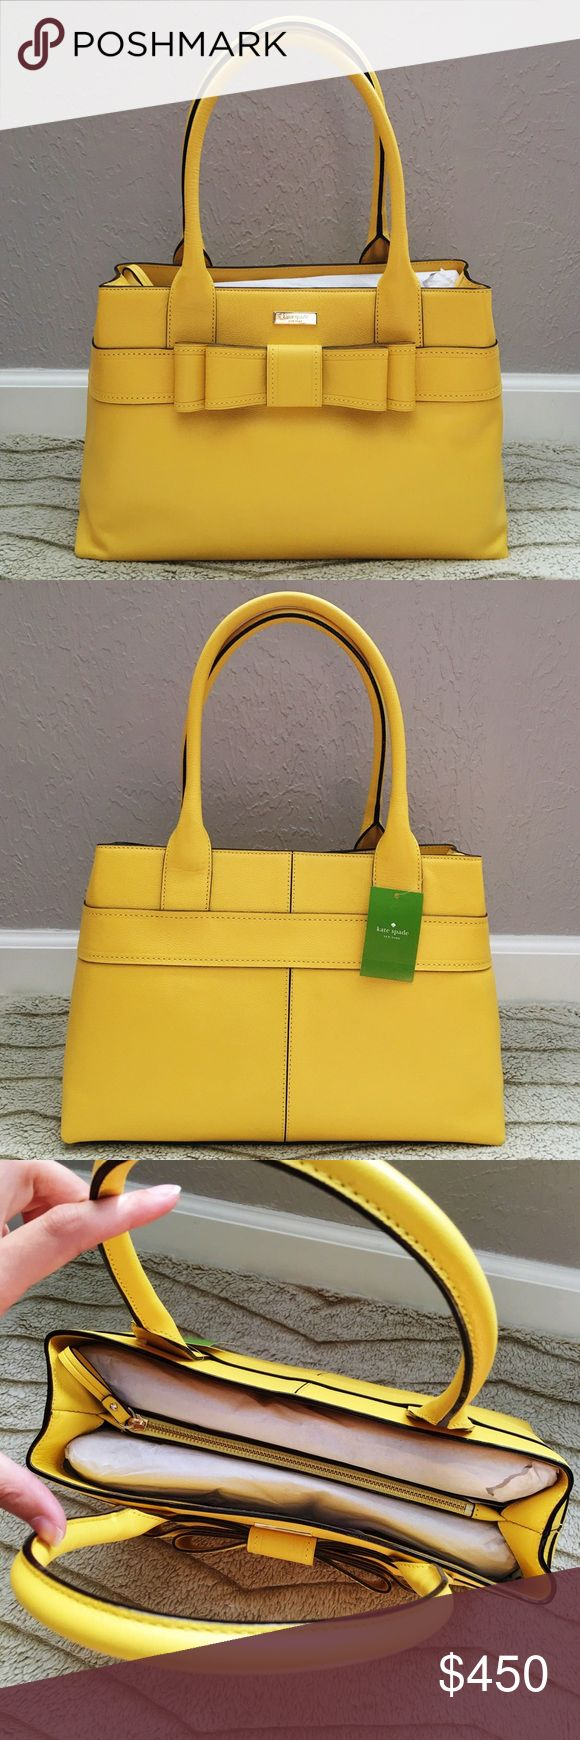 Rare Kate Spade Elena Bag This listing is for a beautiful Kate Spade Elena handbag from the Villabella Collection. It is a satchel / shoulder style purse and has an adorable bow front. The color is limoncello, which is a sunny, warm yellow. Finding this color in this style is nearly impossible -- I couldn't even find any images of it online. It is quite rare. MSRP $450 + tax. Kate Spade Bags Satchels